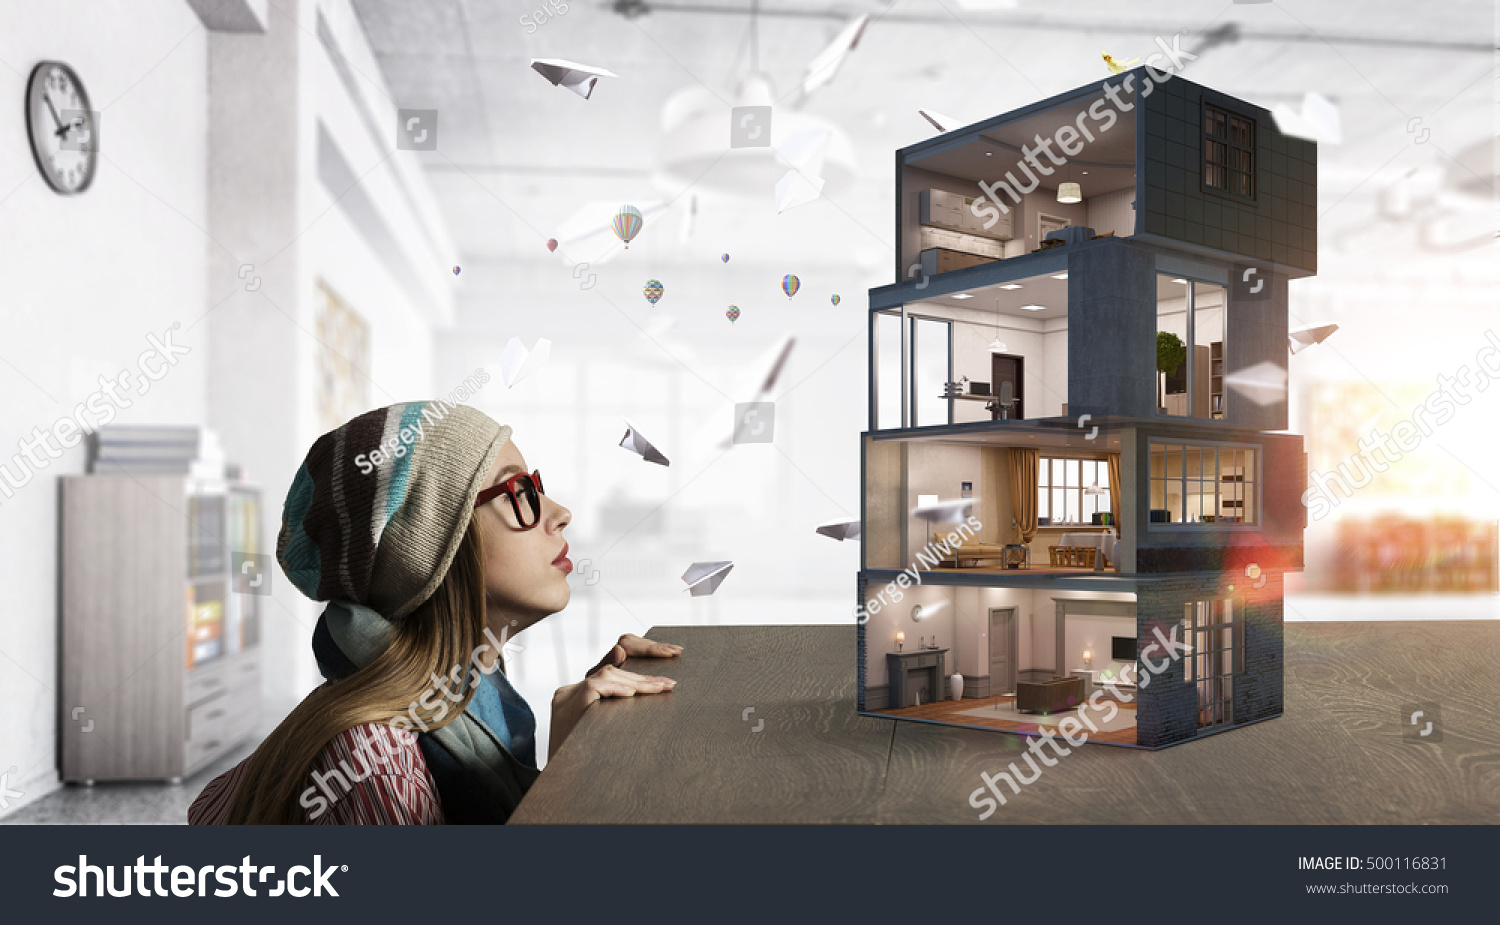 Design Your Dream House Mixed Media Stock Photo (Download Now ...